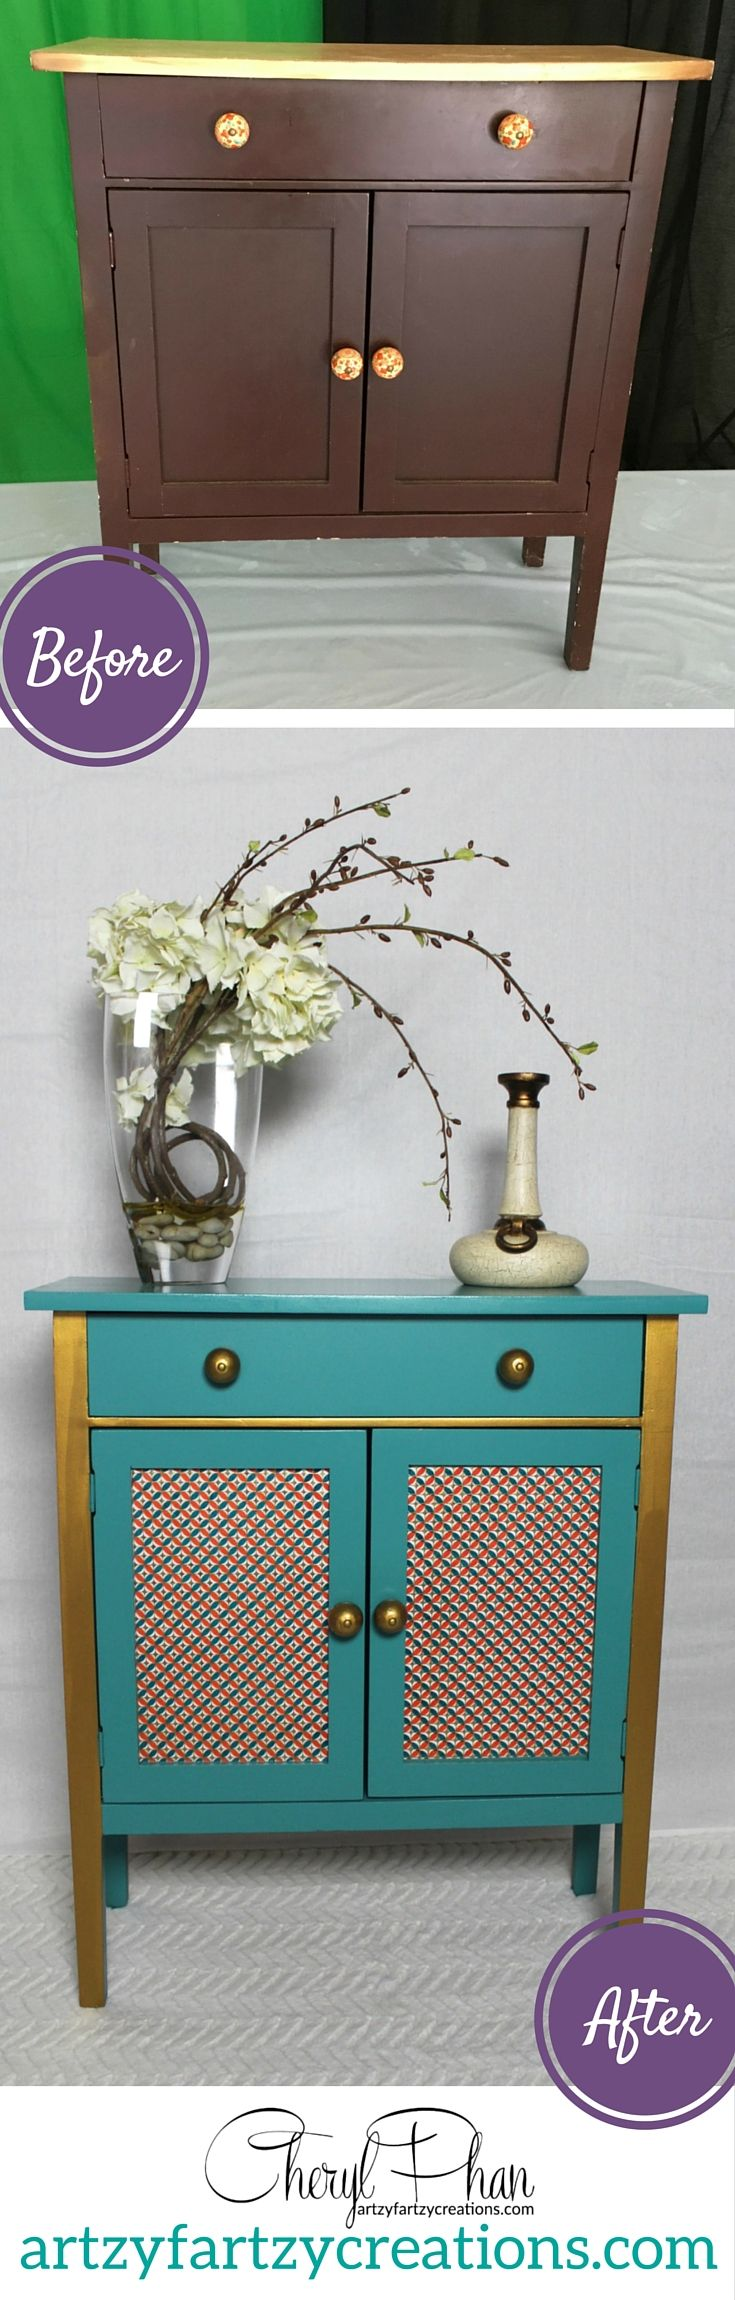 I Painted This $6 Thrift Store Hutch As A One Day DIY Project. Check